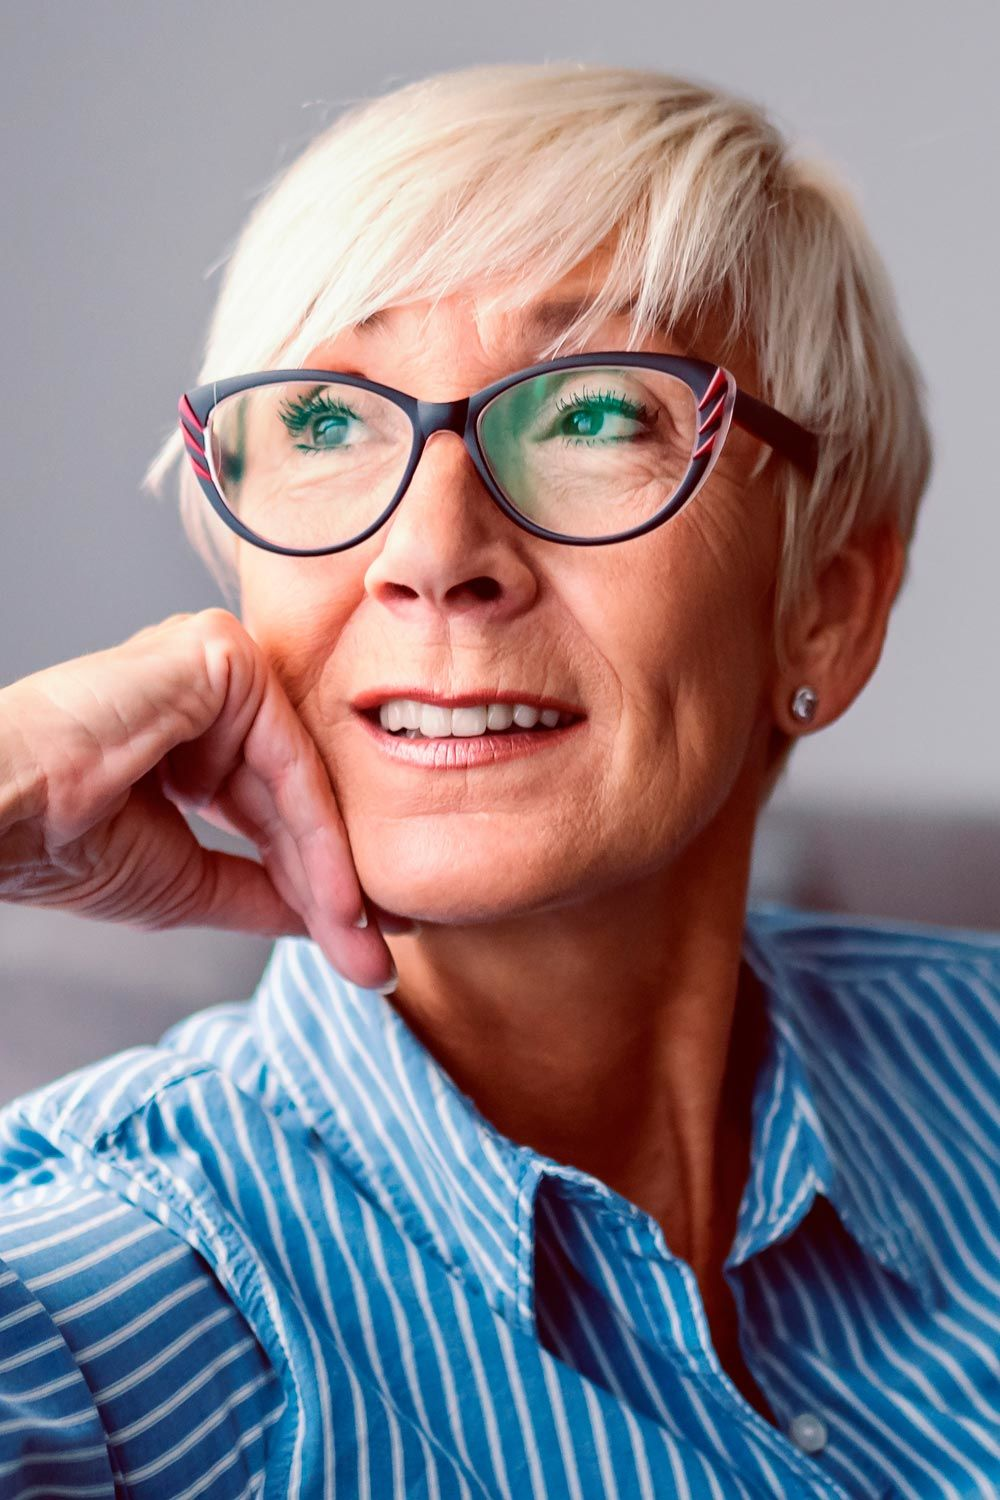 Short Haircut With Side Bangs For Ladies Over 60